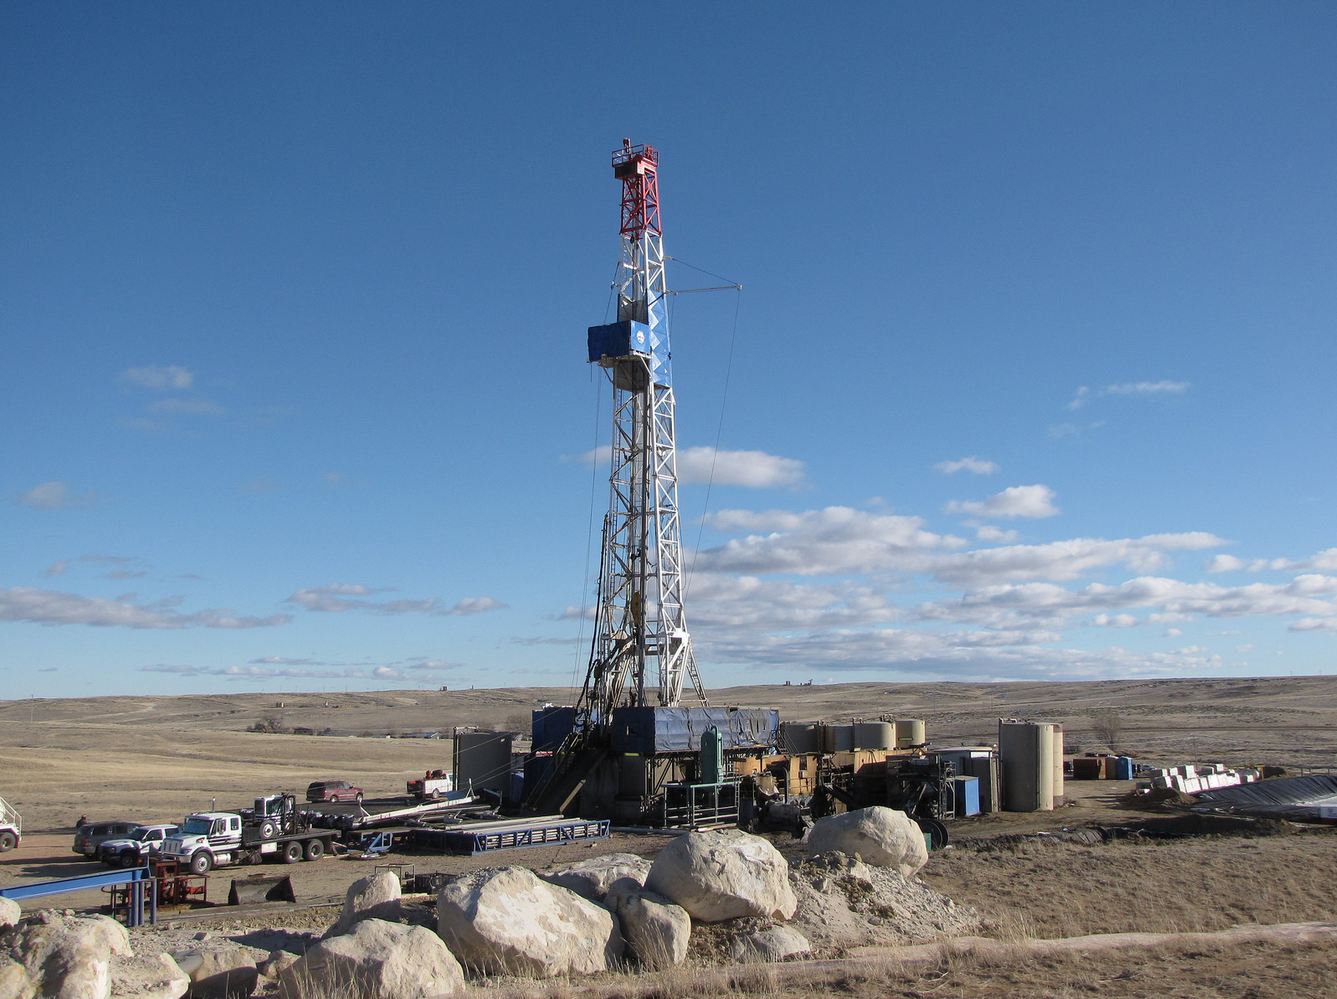 Oil and Gas Drilling Rig Operating (H/t Bureau of Land Management)